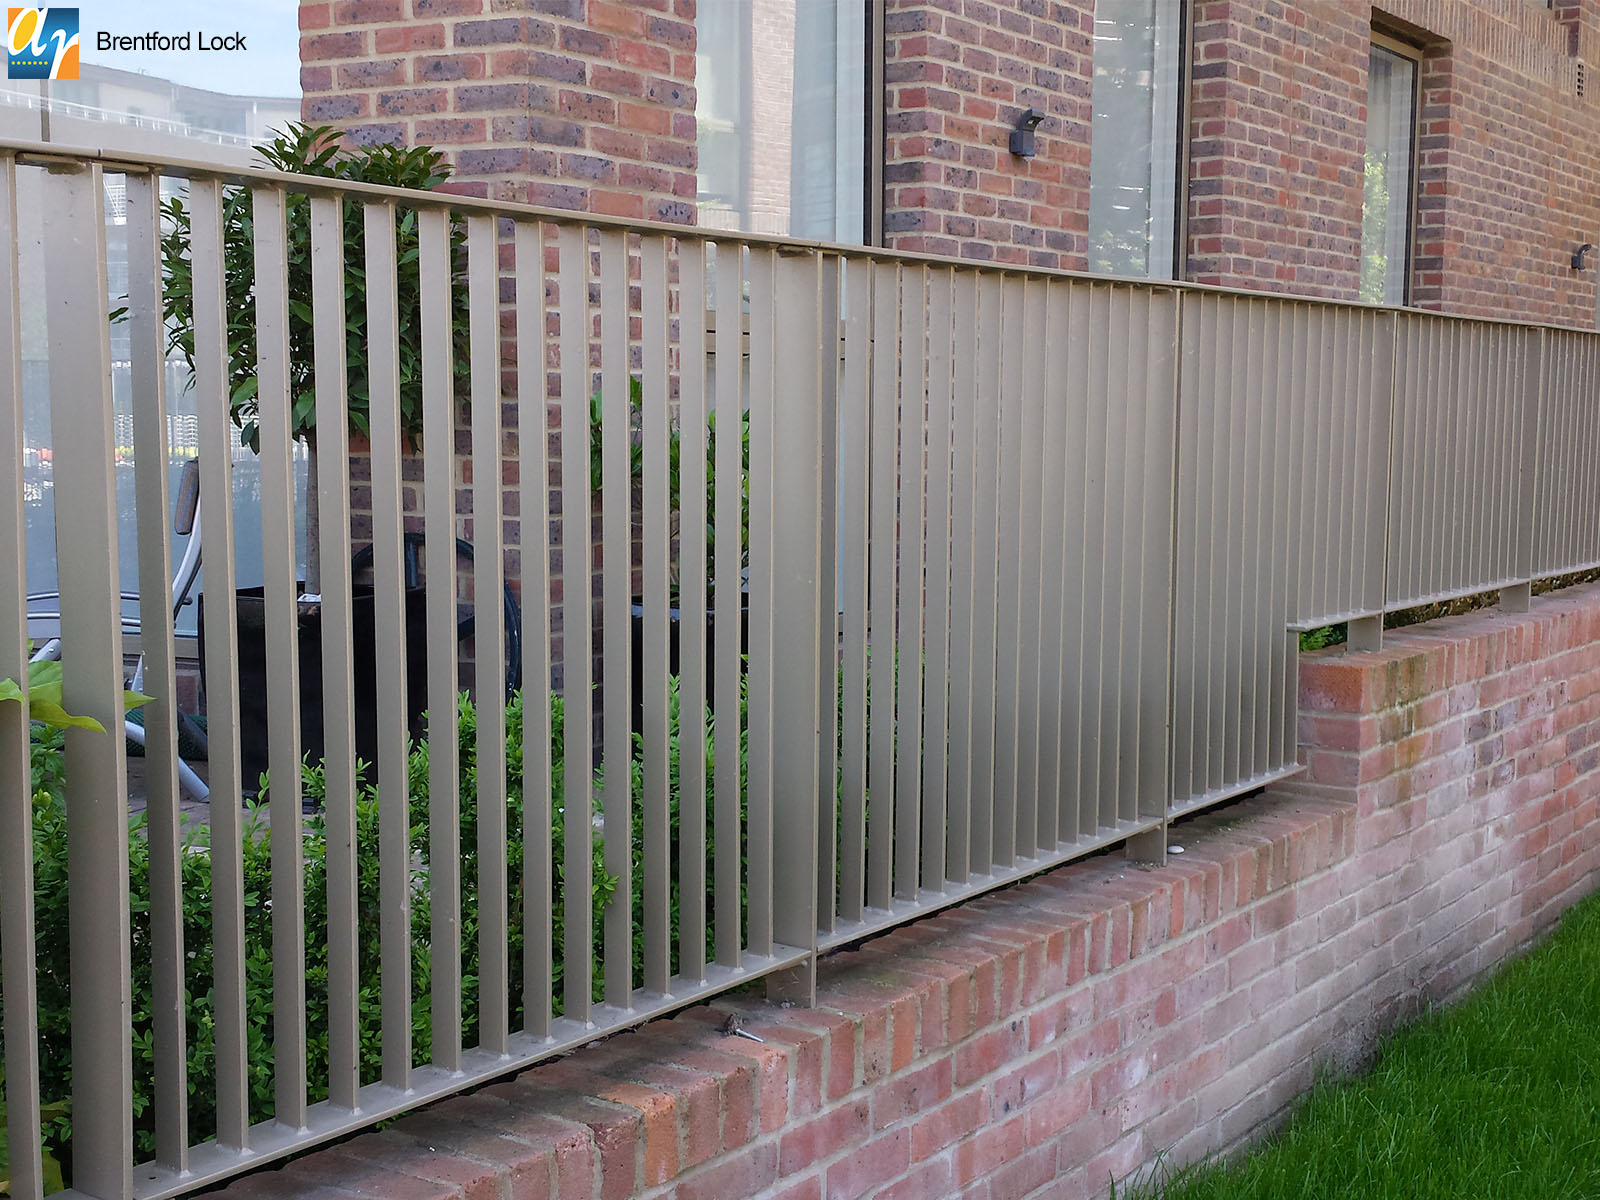 Brenford Lock flat top metal railings